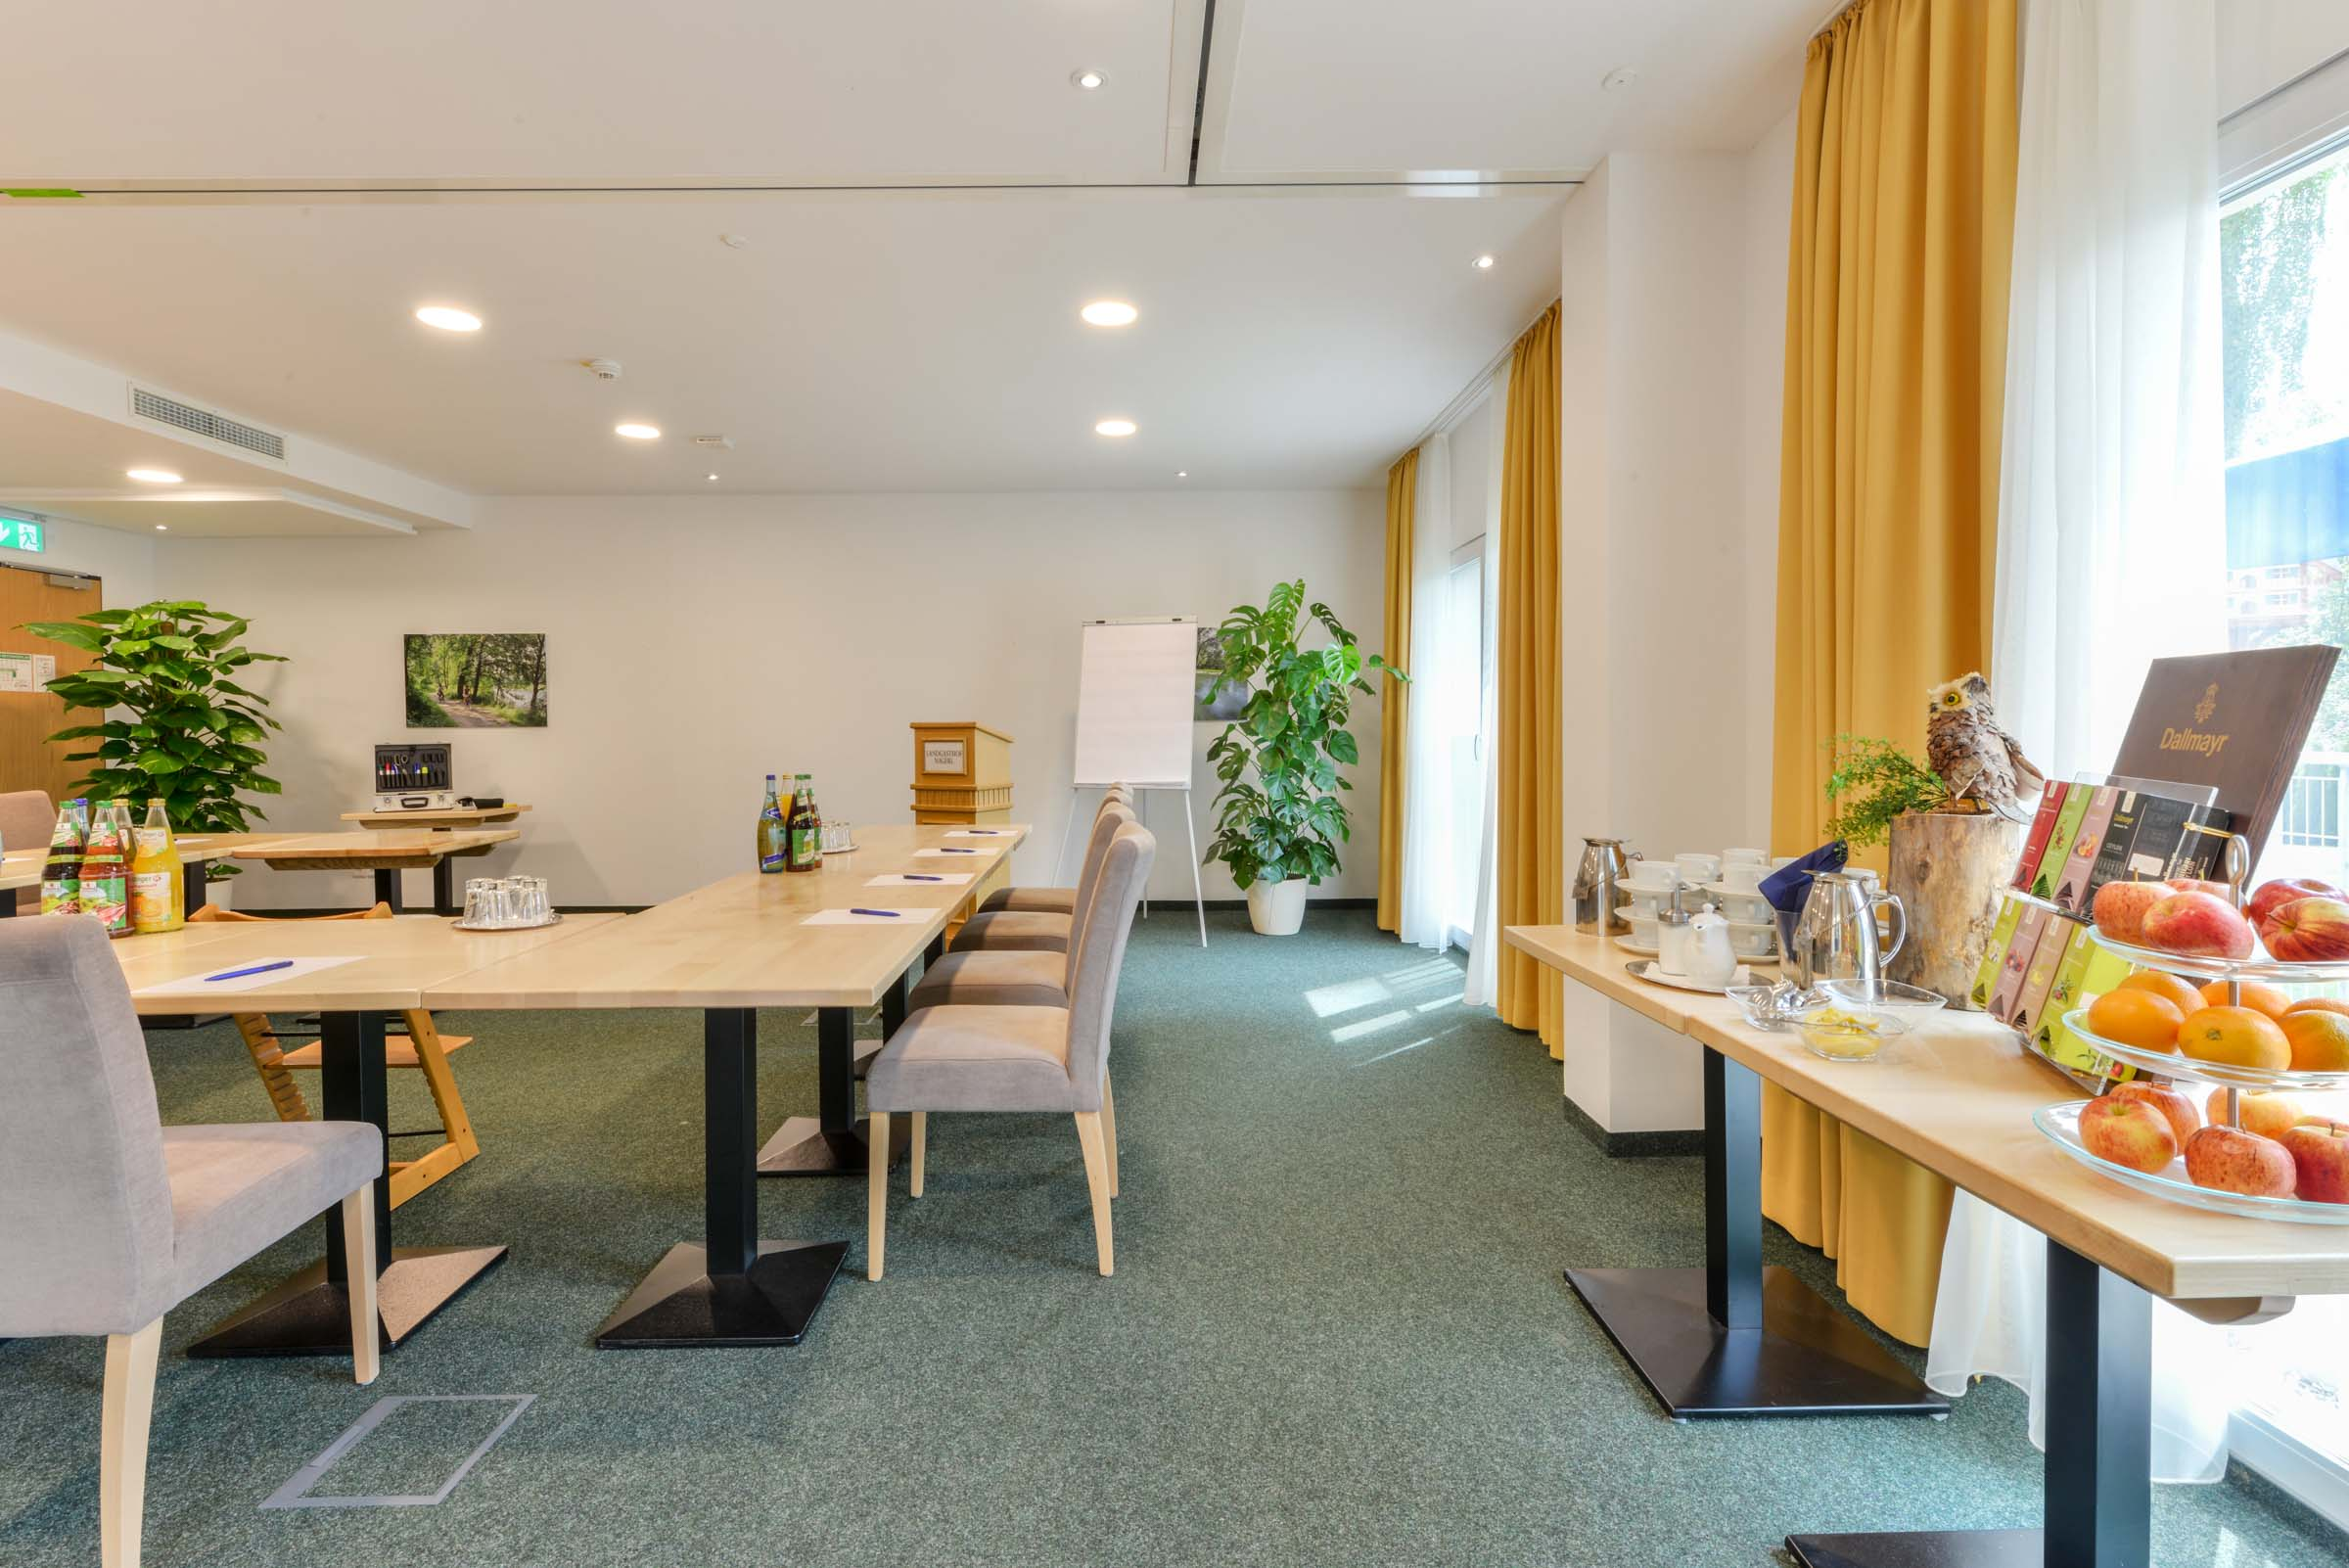 Hotel Nagerl conference room and board at Munich Airport